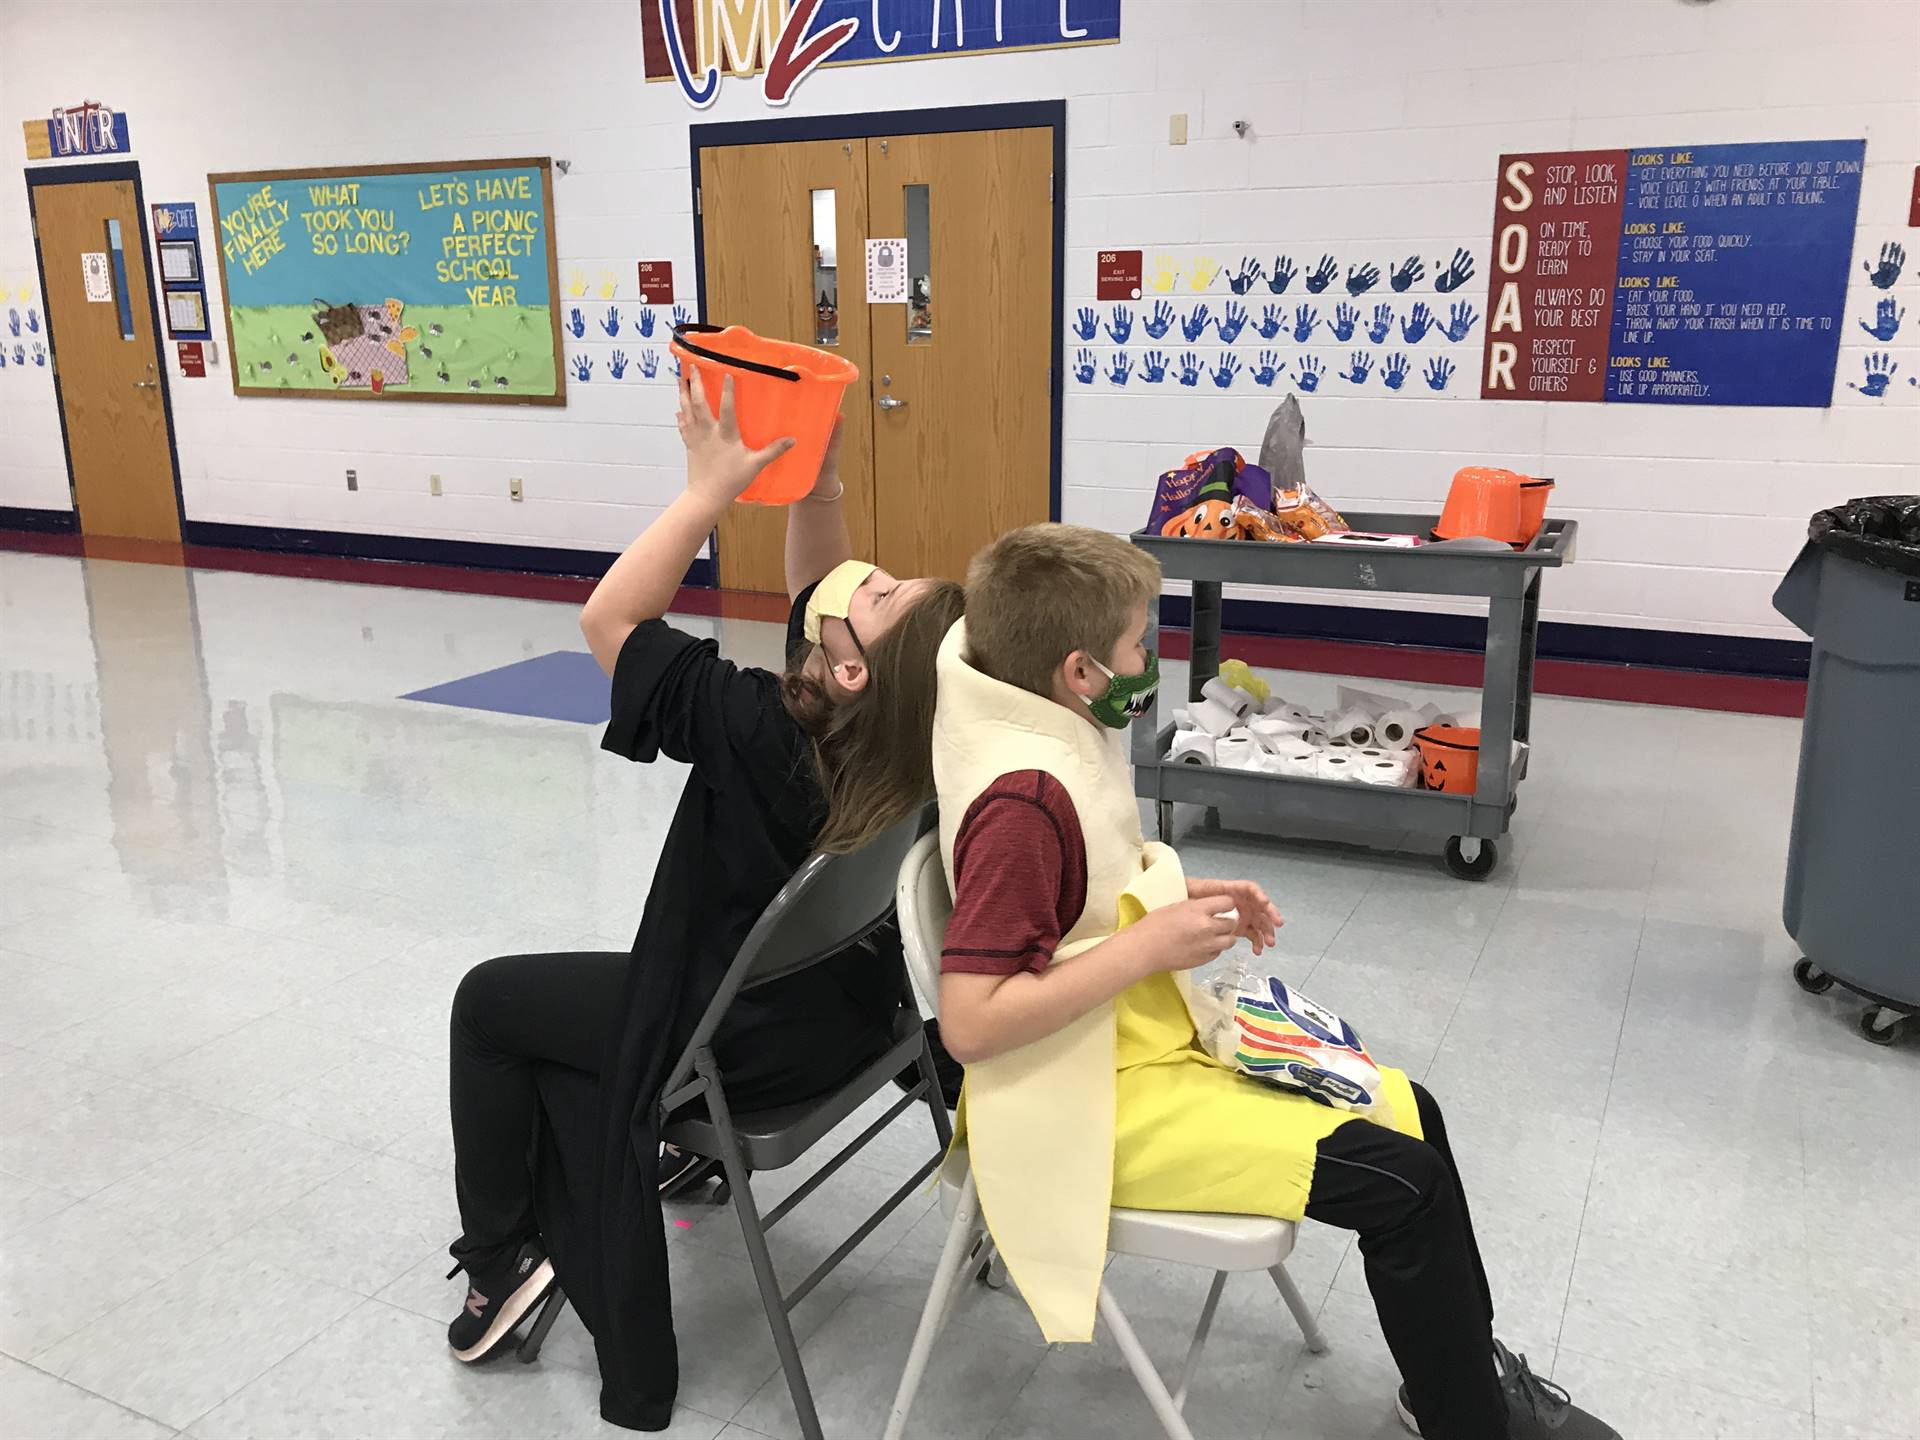 2 children playing a game with an orange bucket sitting back to back